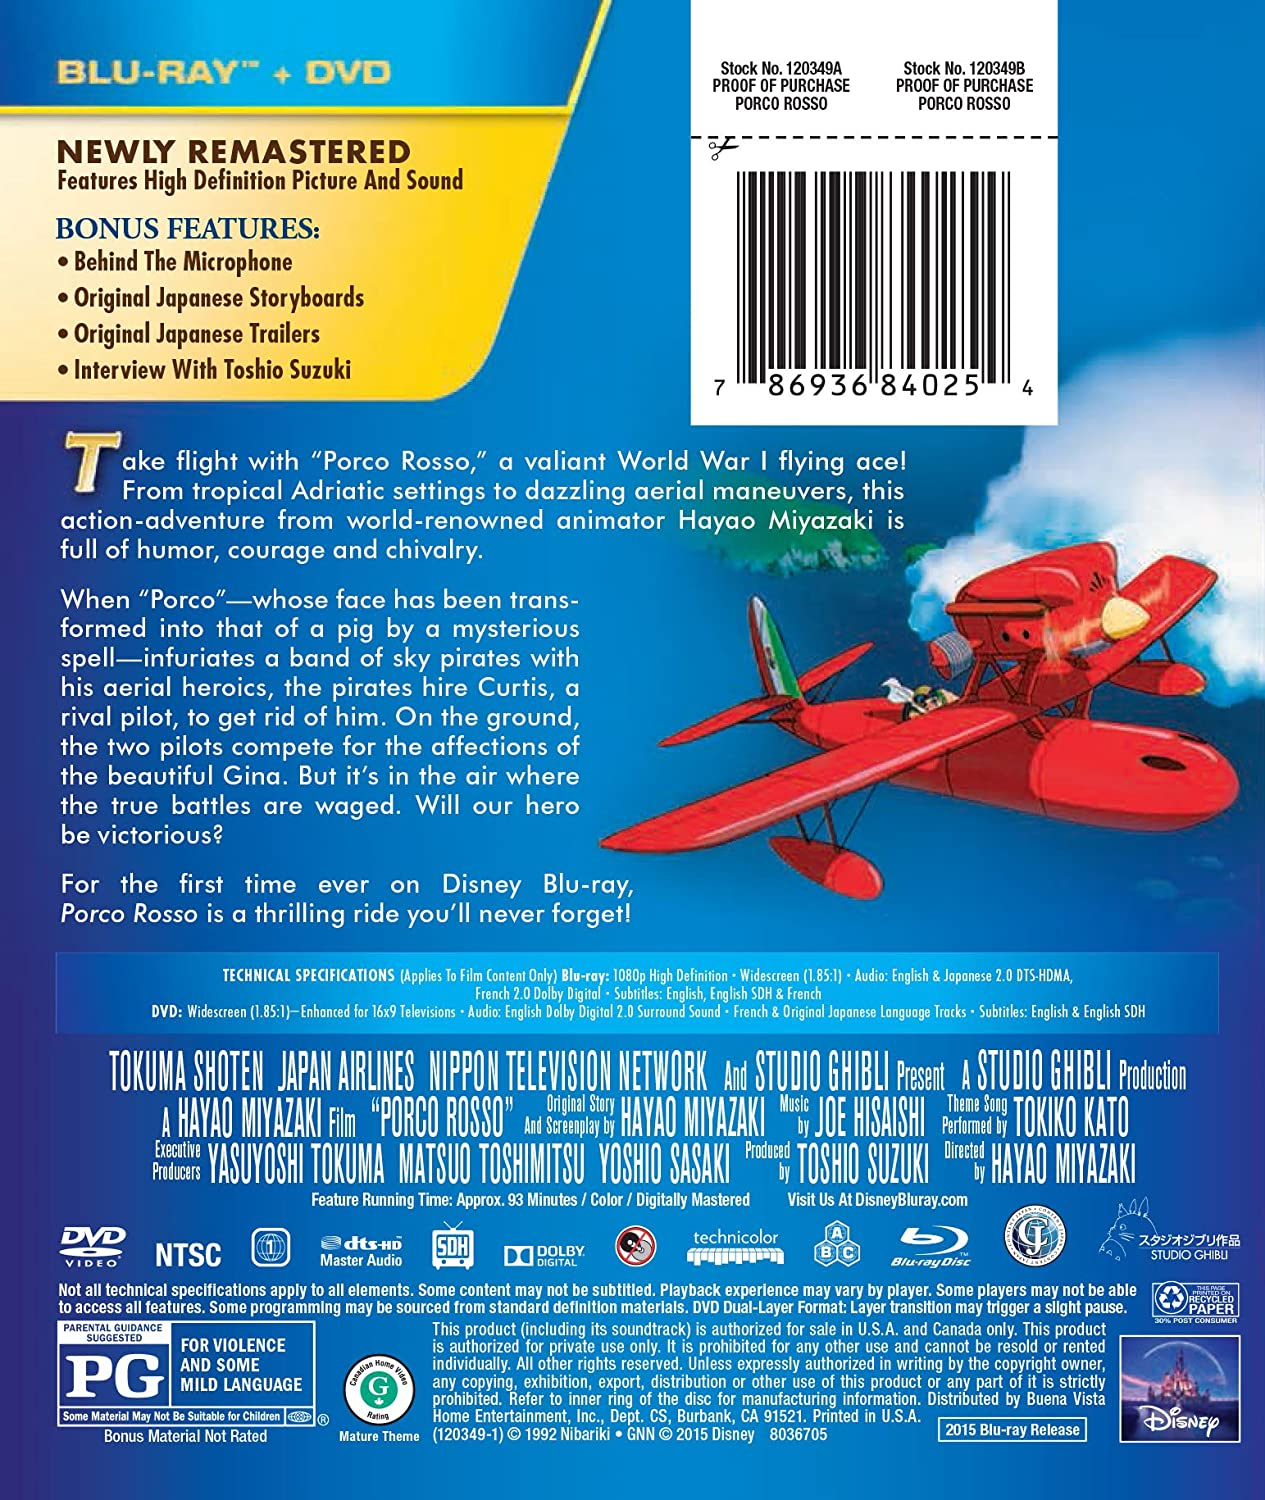 Porco Rosso [USA] [Blu-ray]: Amazon.es: Michael Keaton, Cary Elwes, Kimberly Williams-Paisley, Susan Egan, David Ogden Stiers, Hayao Miyazaki: Cine y Series ...